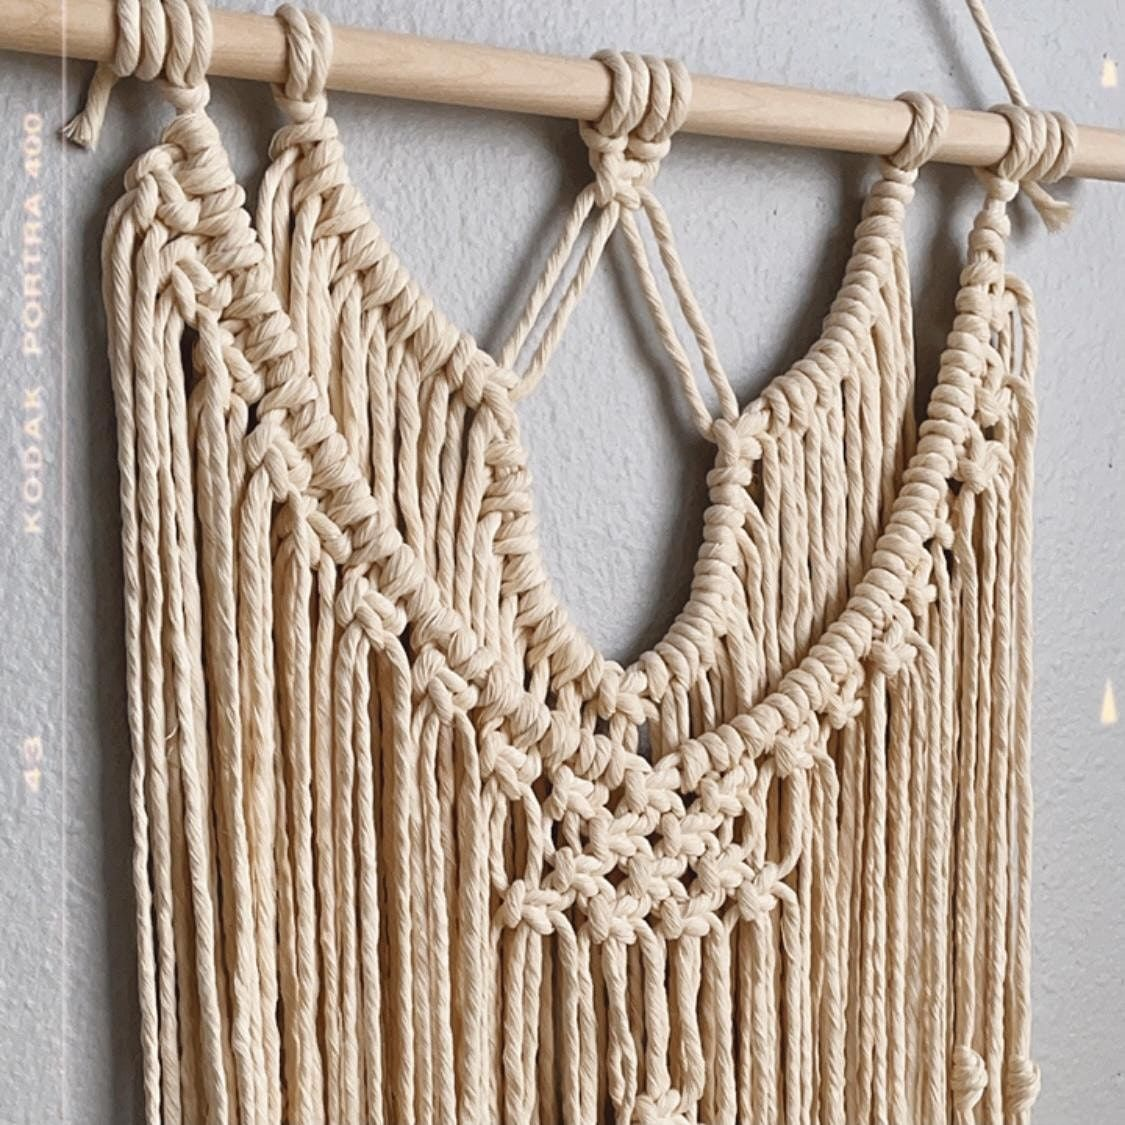 Macrame Workshop with Just Knots & Knots at Orlando Brewing